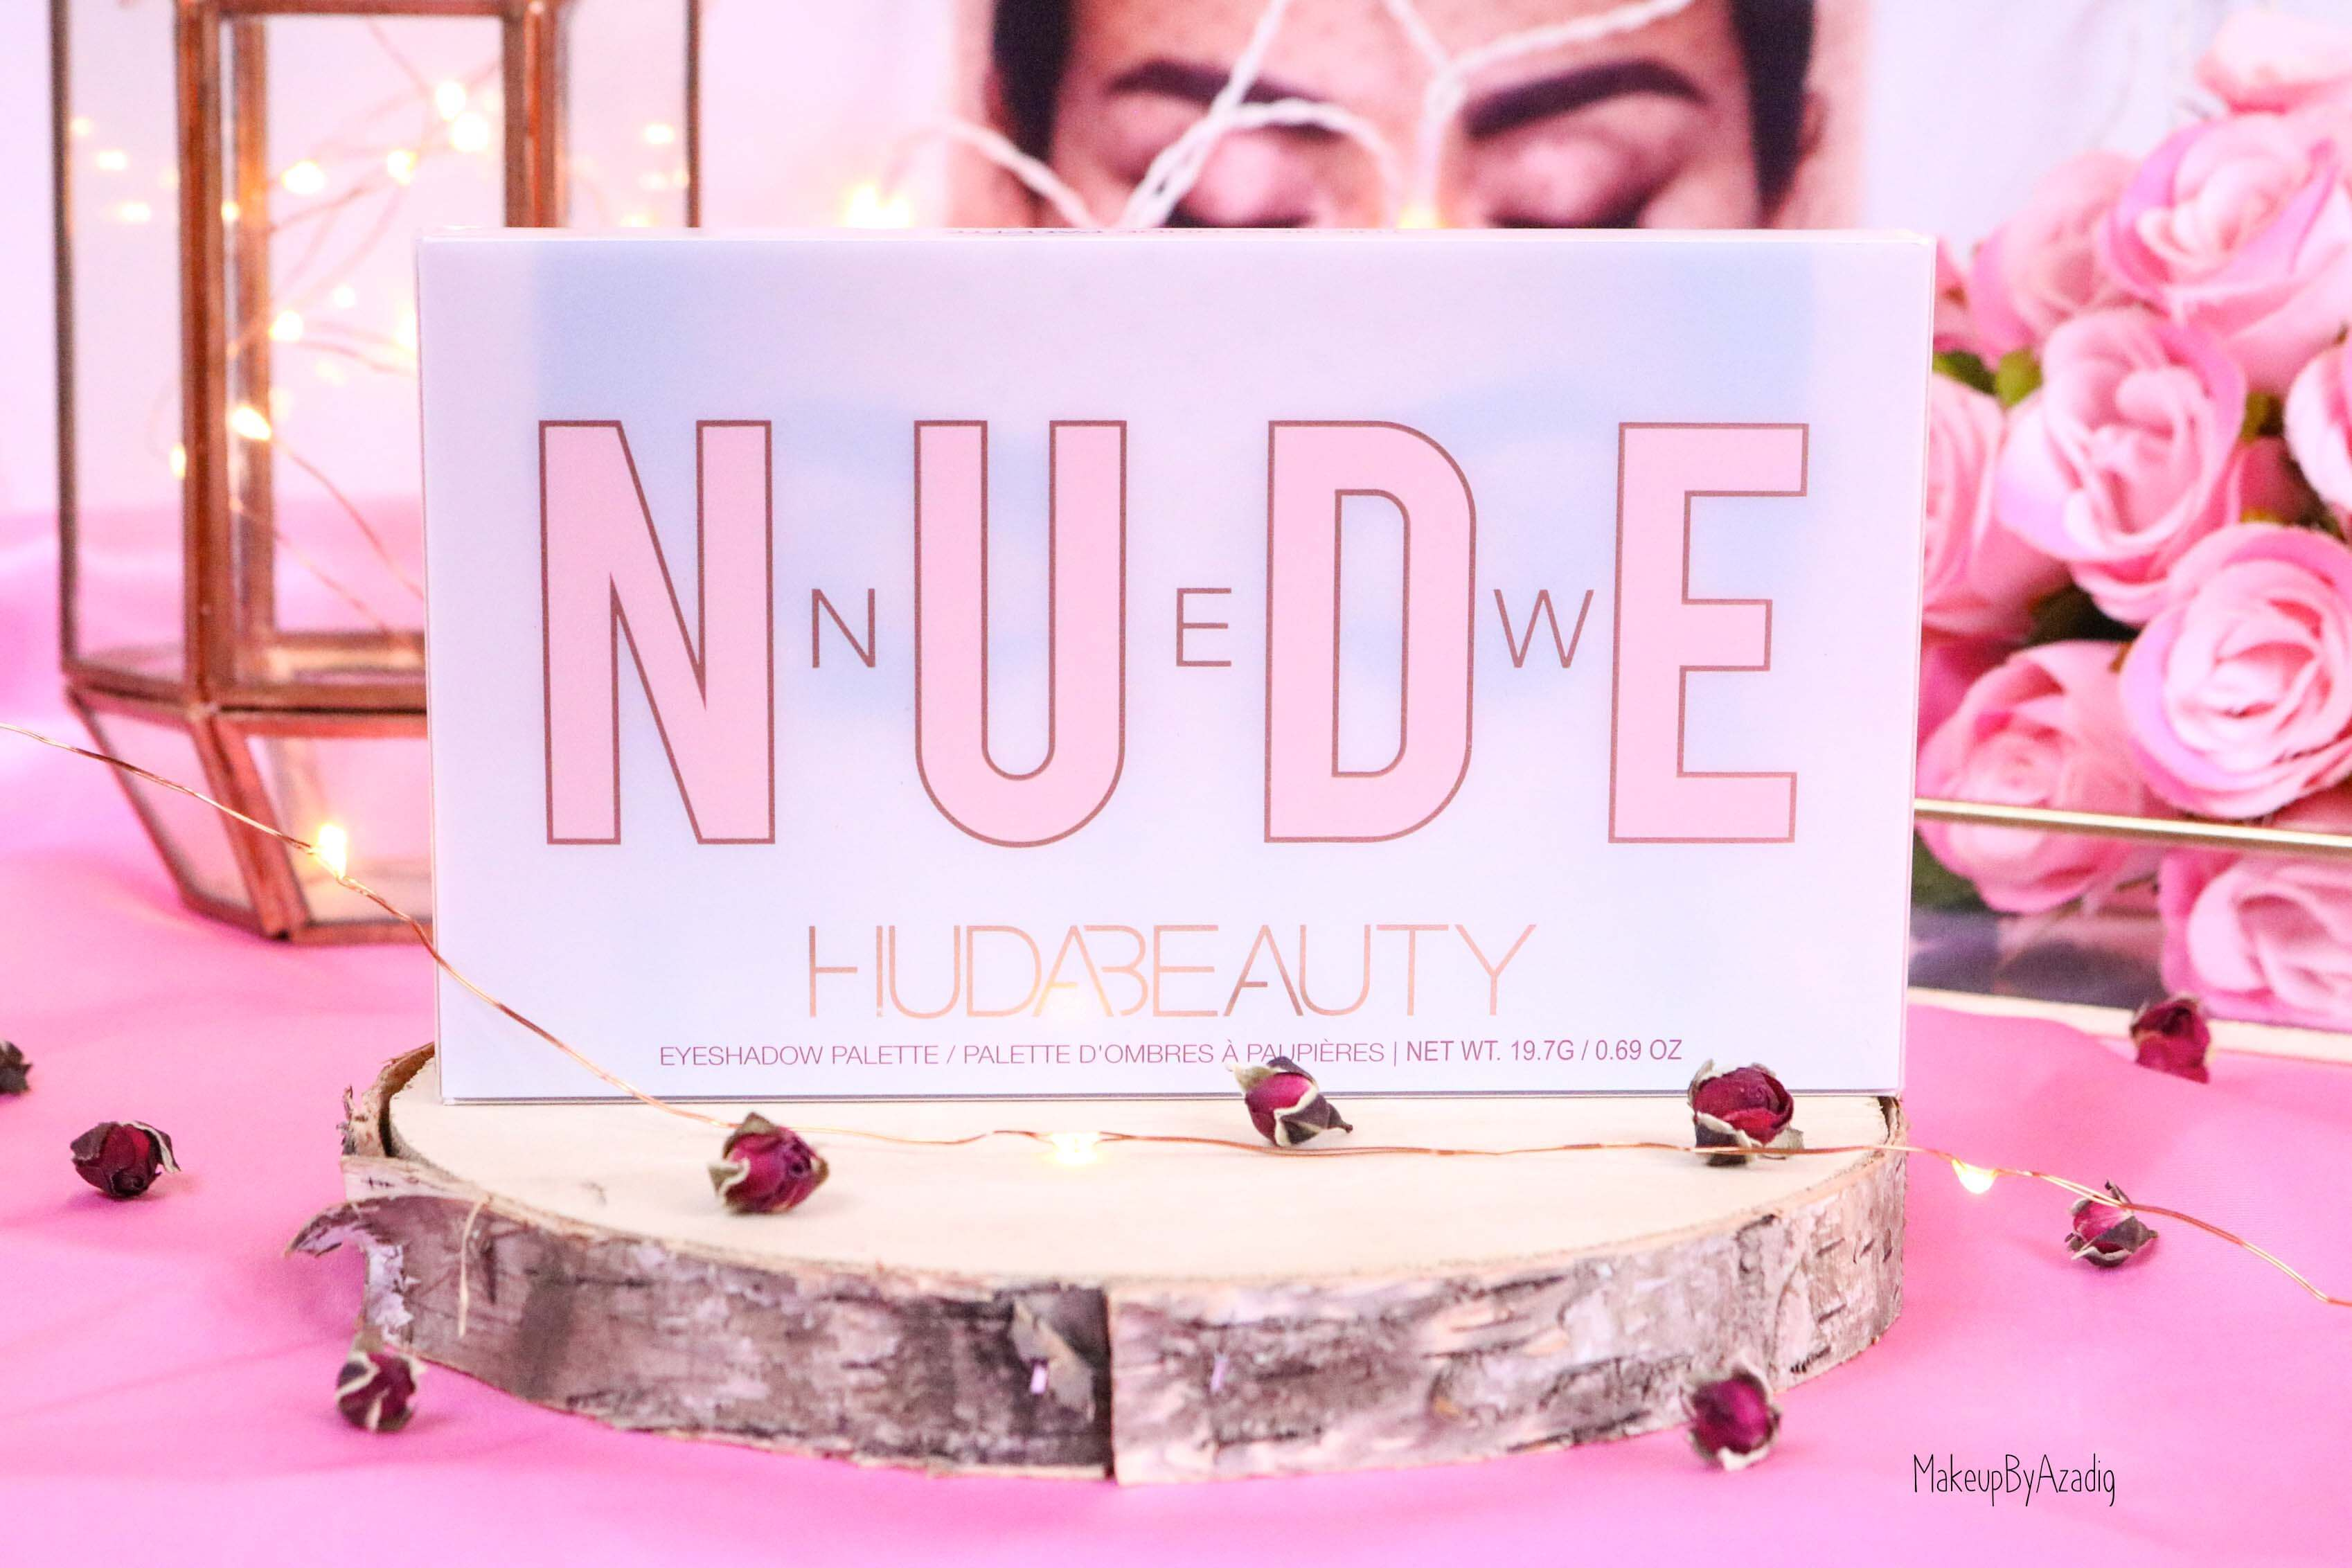 revue-review-palette-new-nude-obsessions-huda-beauty-nacre-sephora-avis-prix-swatch-makeupbyazadig-emballage